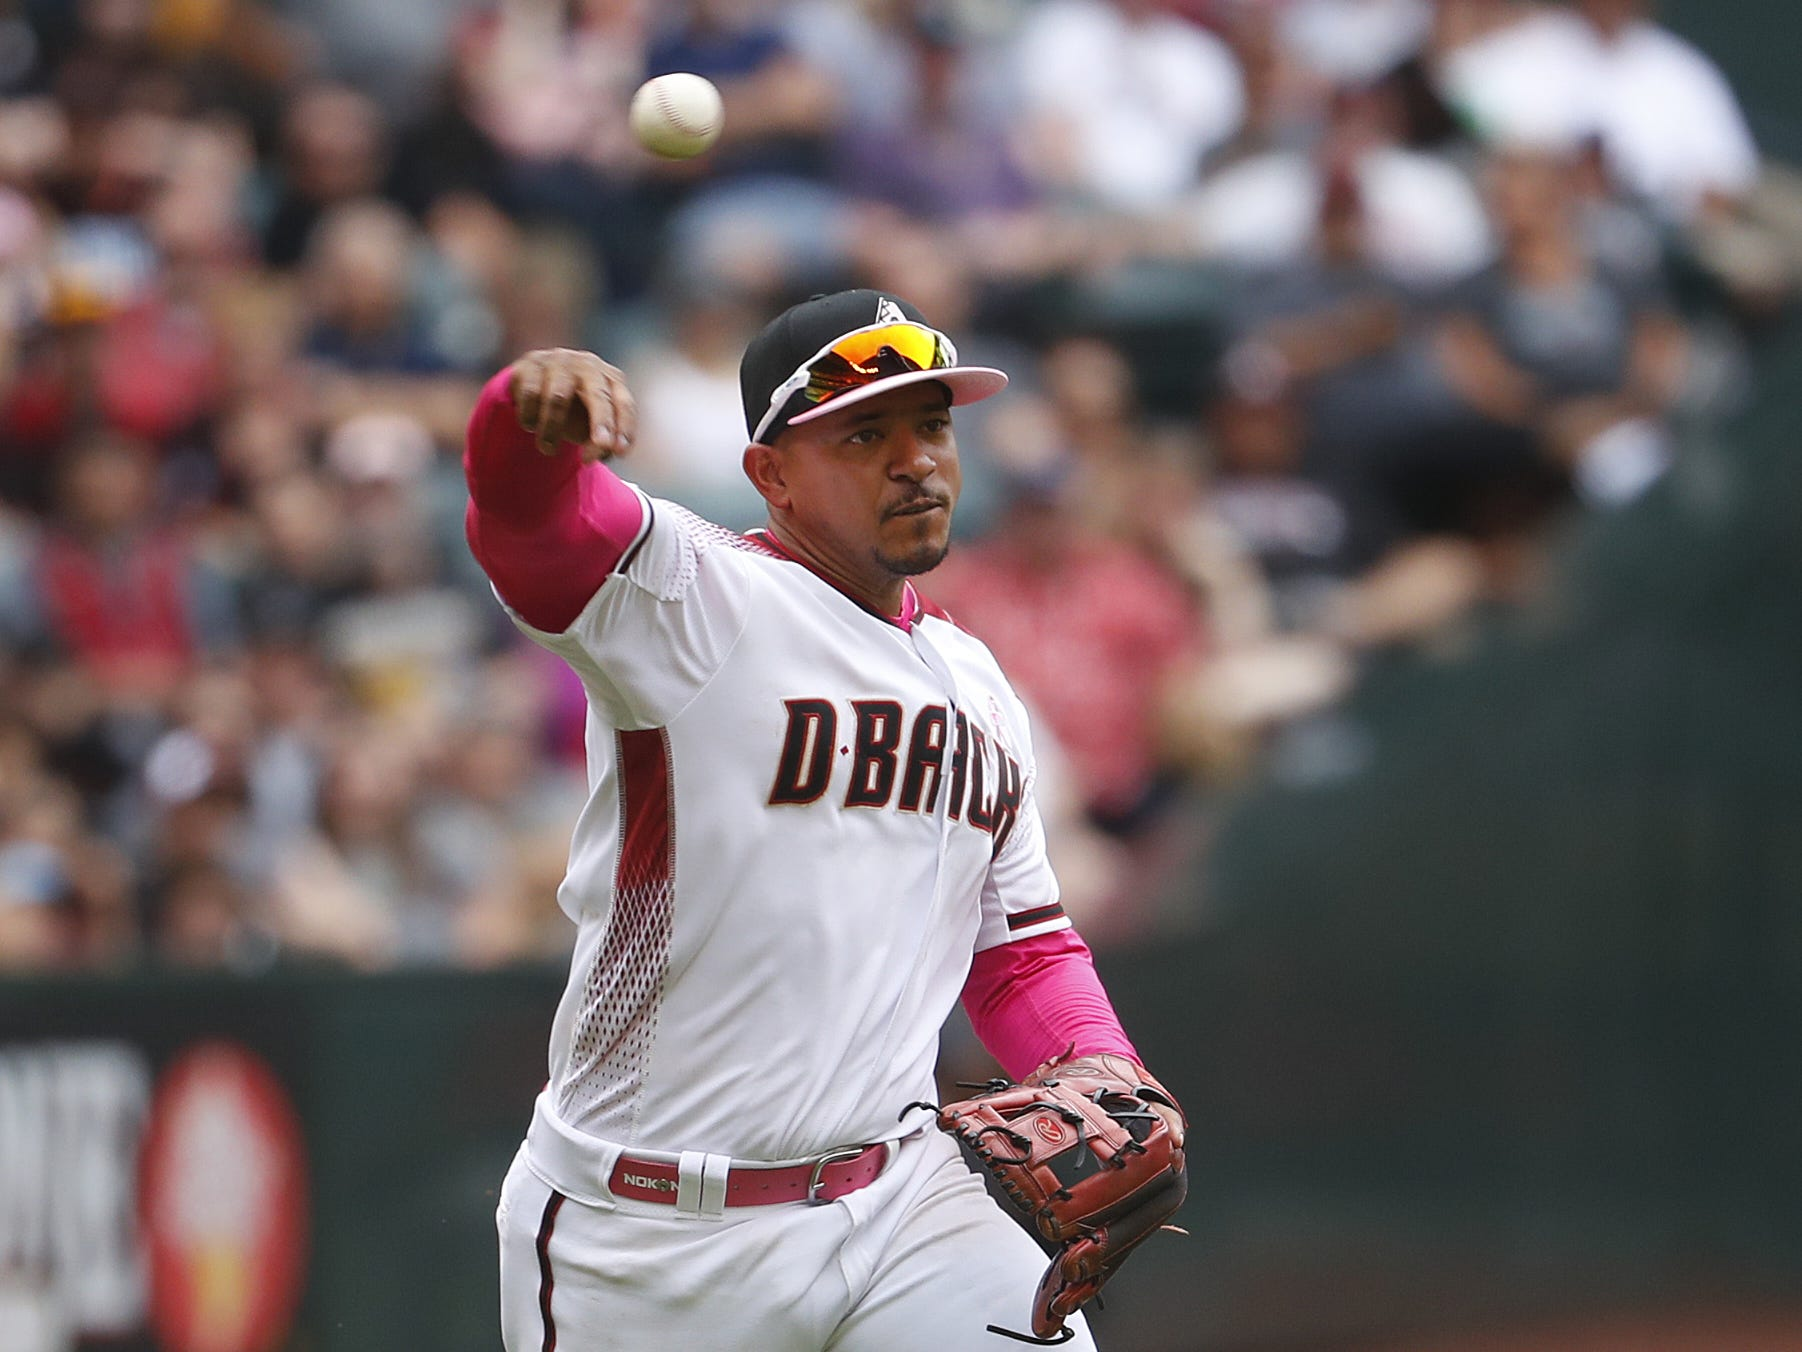 Diamondbacks' Eduardo Escobar throws to first base against the Braves during the seventh inning at Chase Field in Phoenix, Ariz. on May 12, 2019.